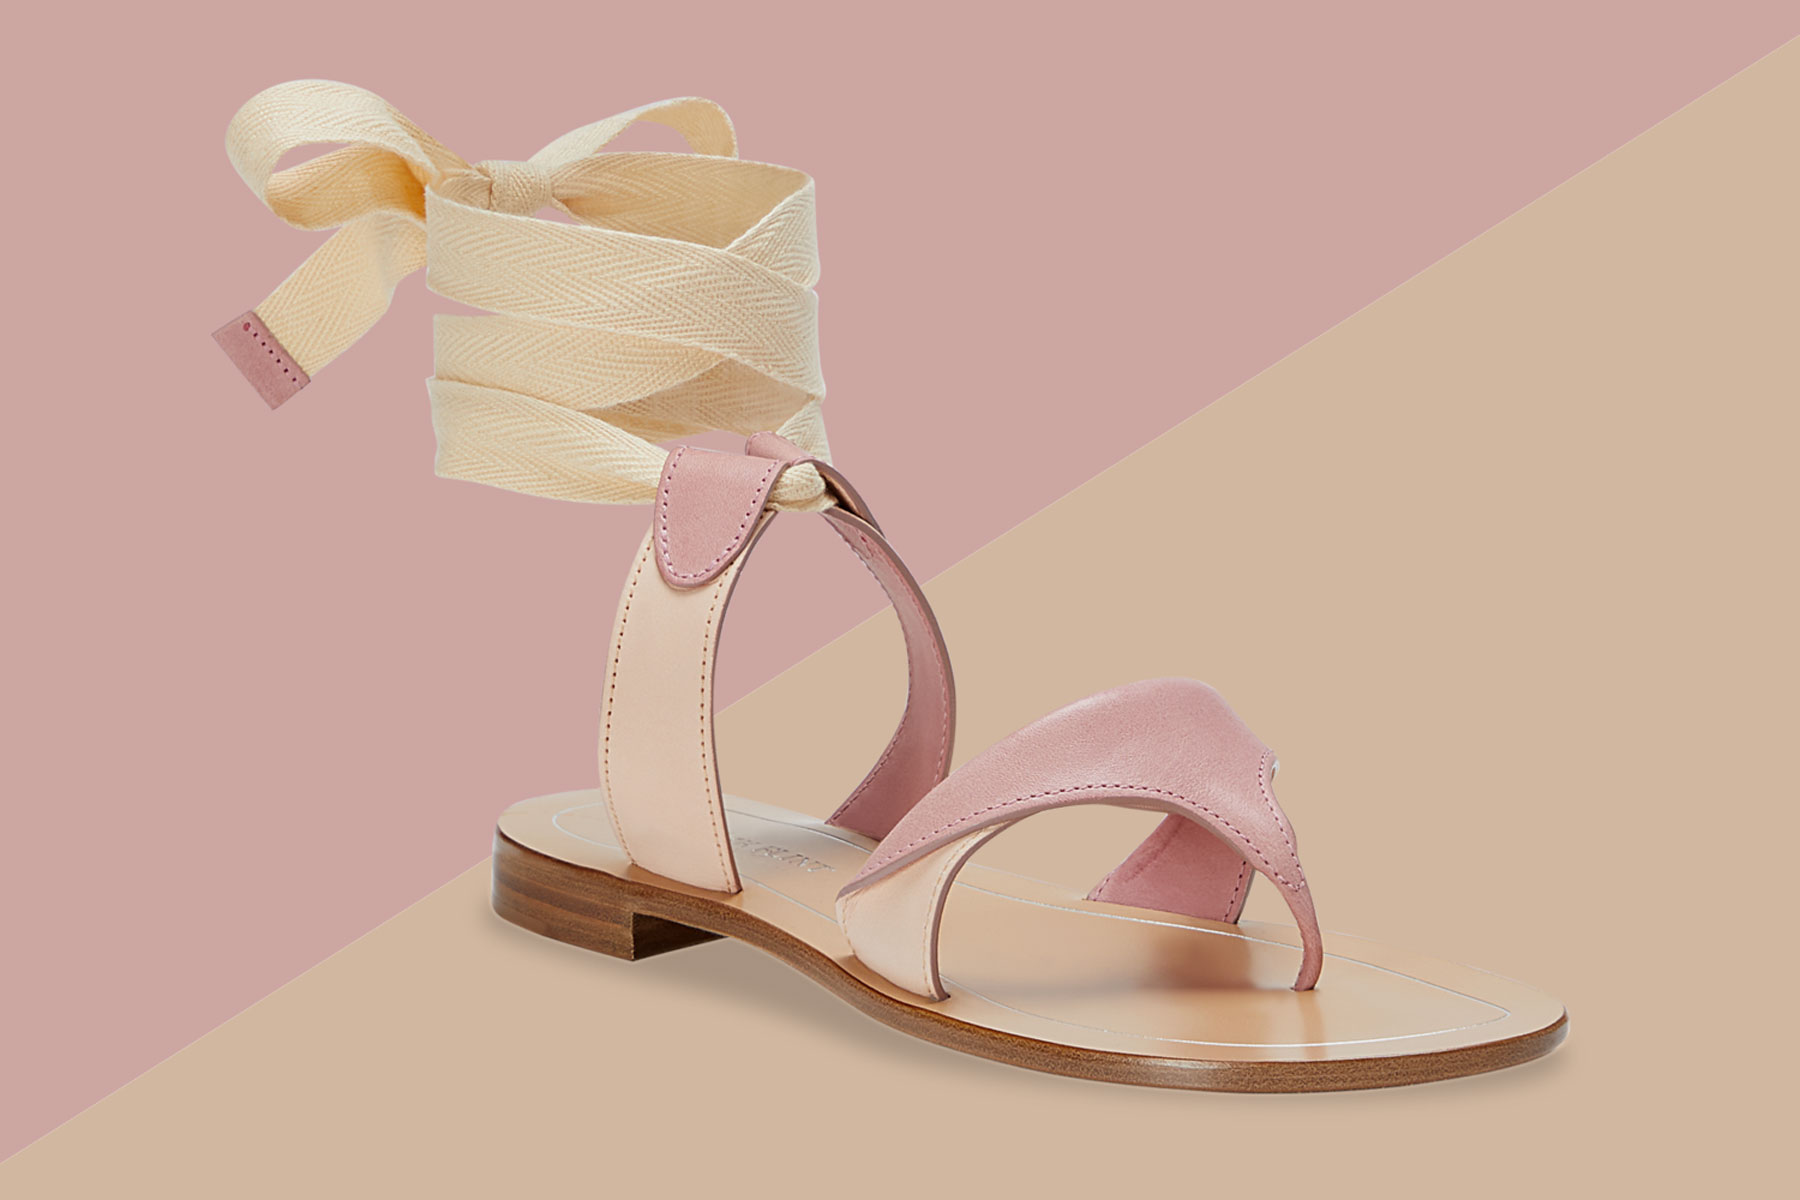 Pink and tan leather sandals